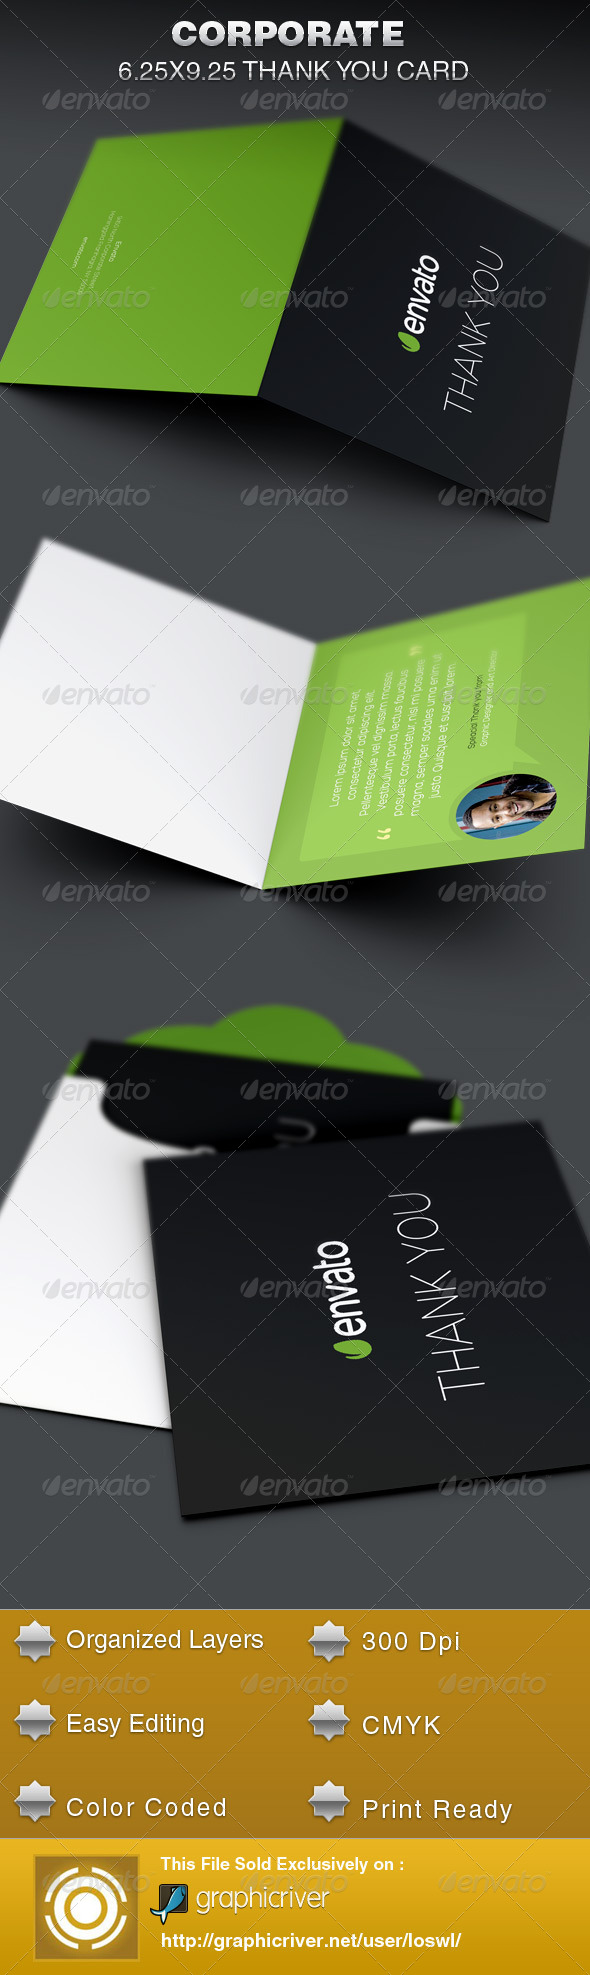 Corporate Thank You Card Template By Loswl GraphicRiver - Thank you for your business card template